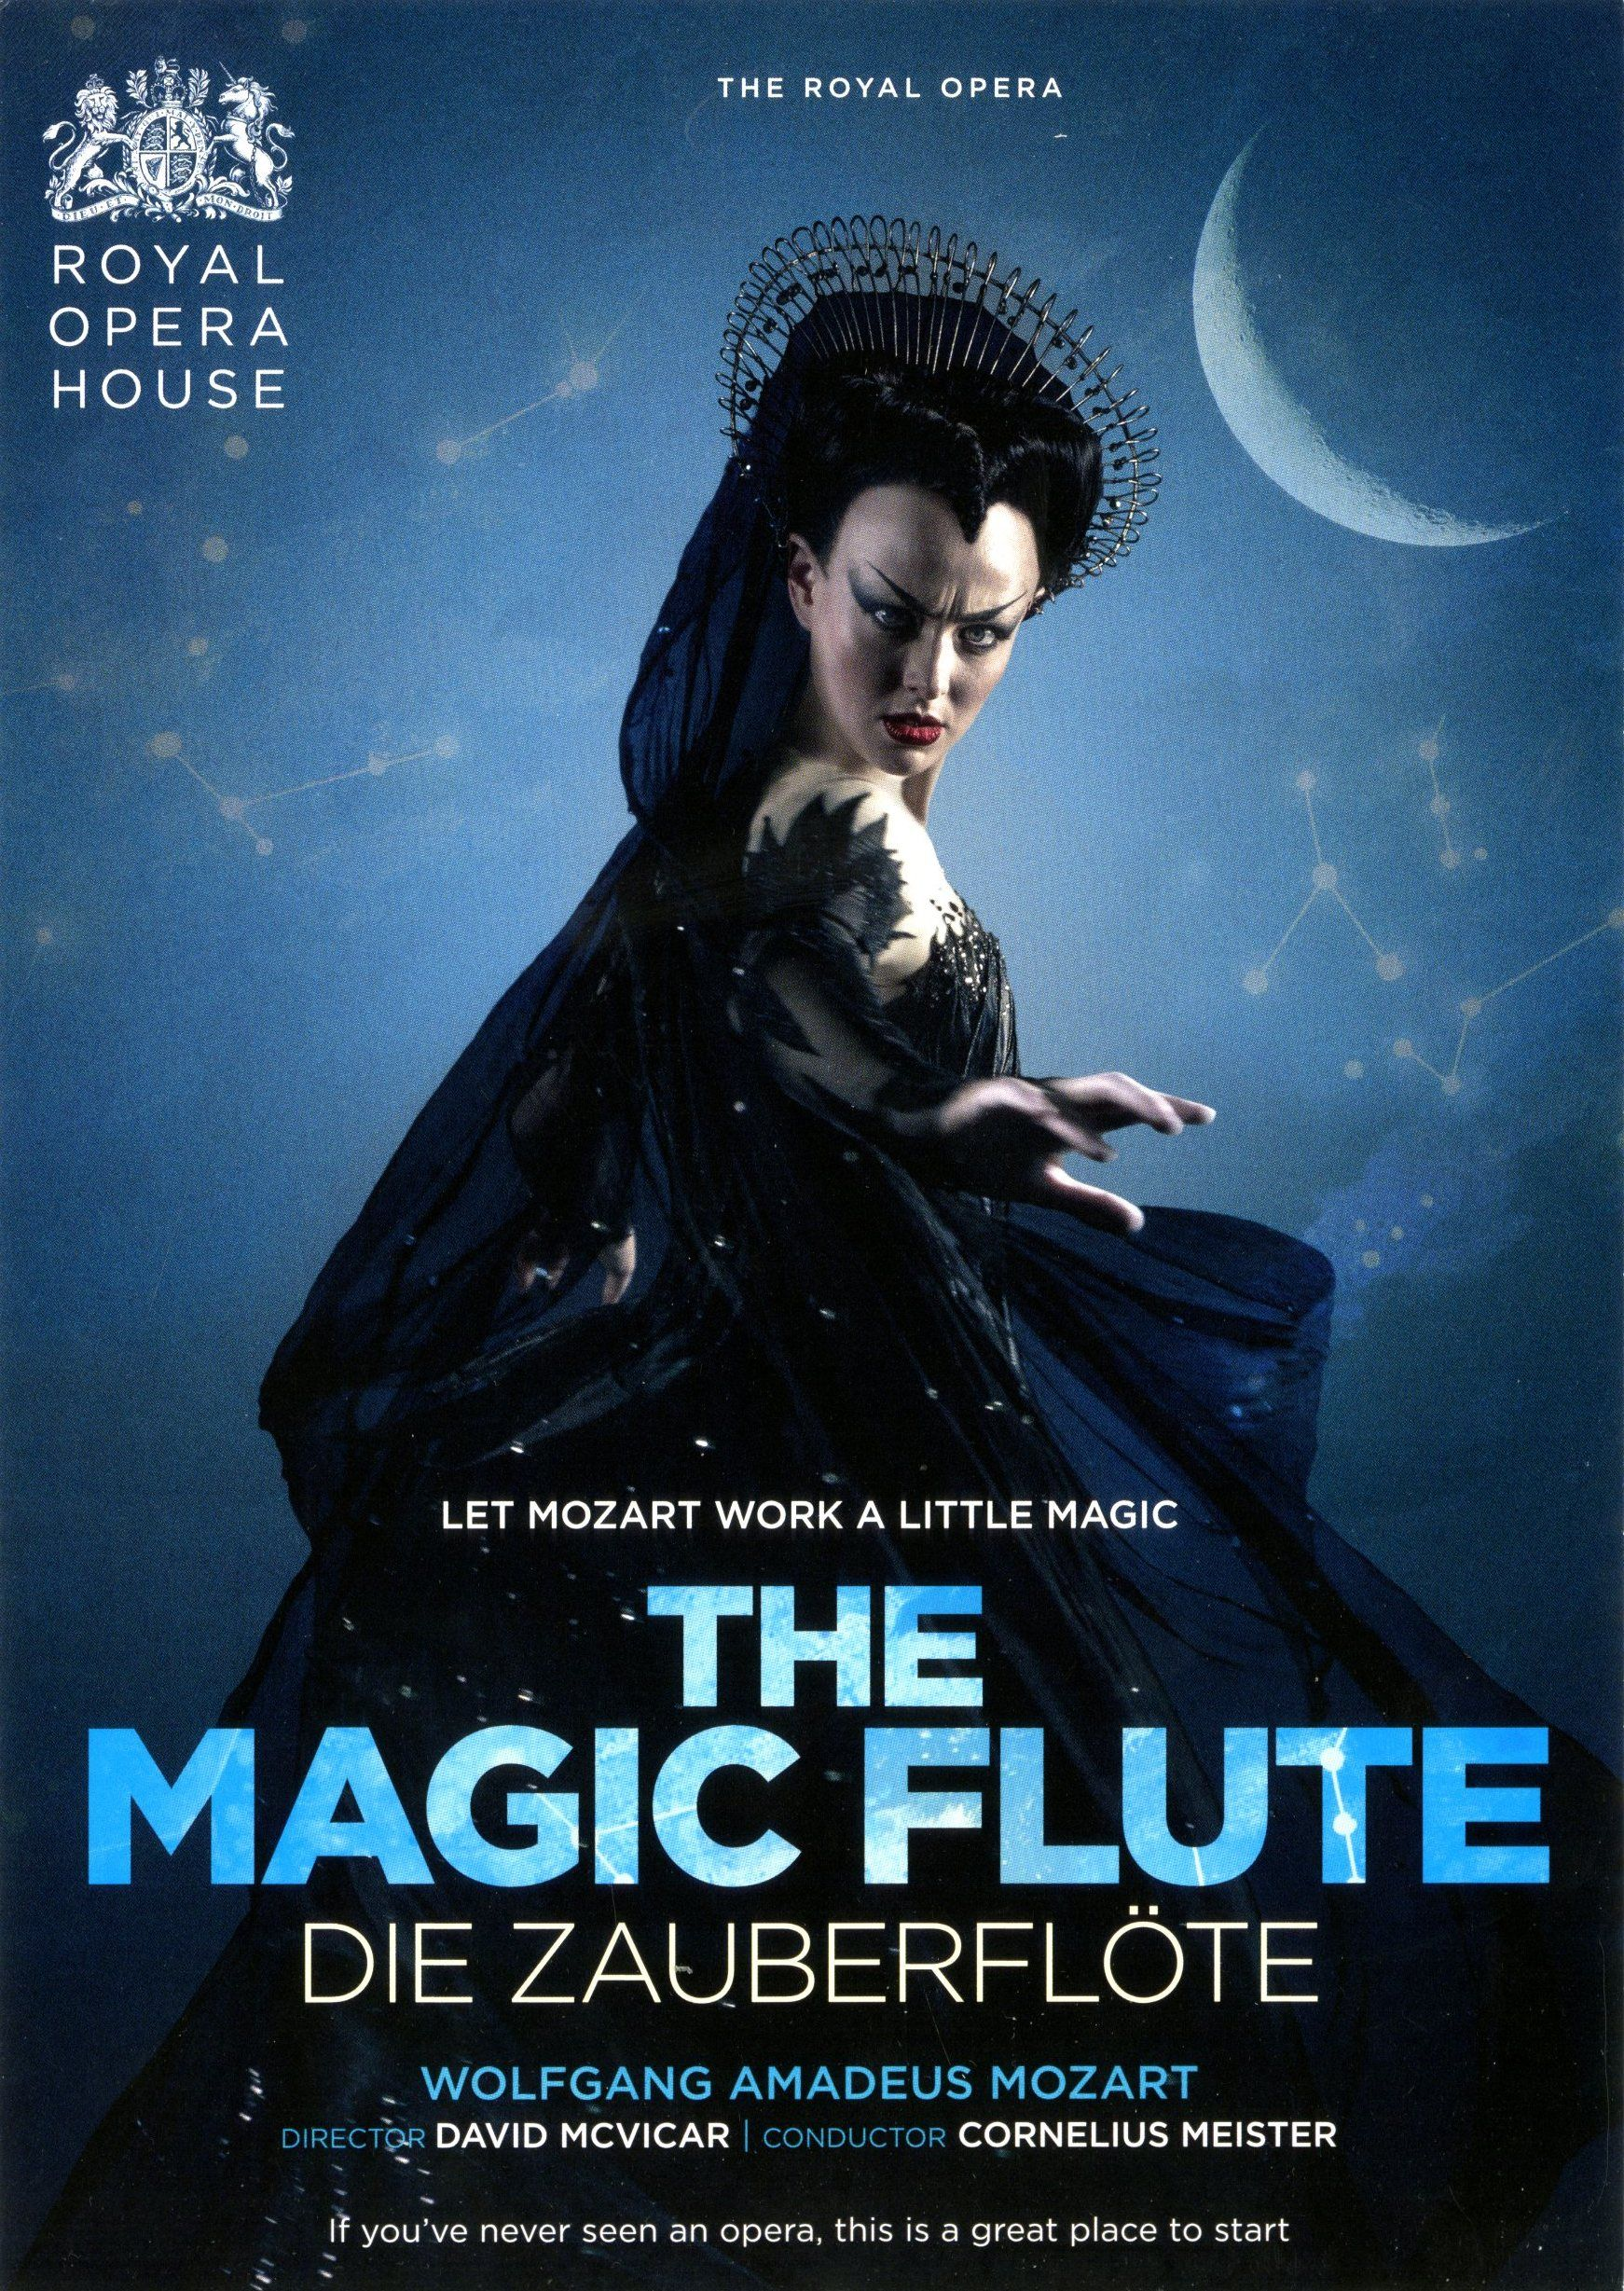 The Magic Flute Roh Theatre Poster Opera The Magic Flute